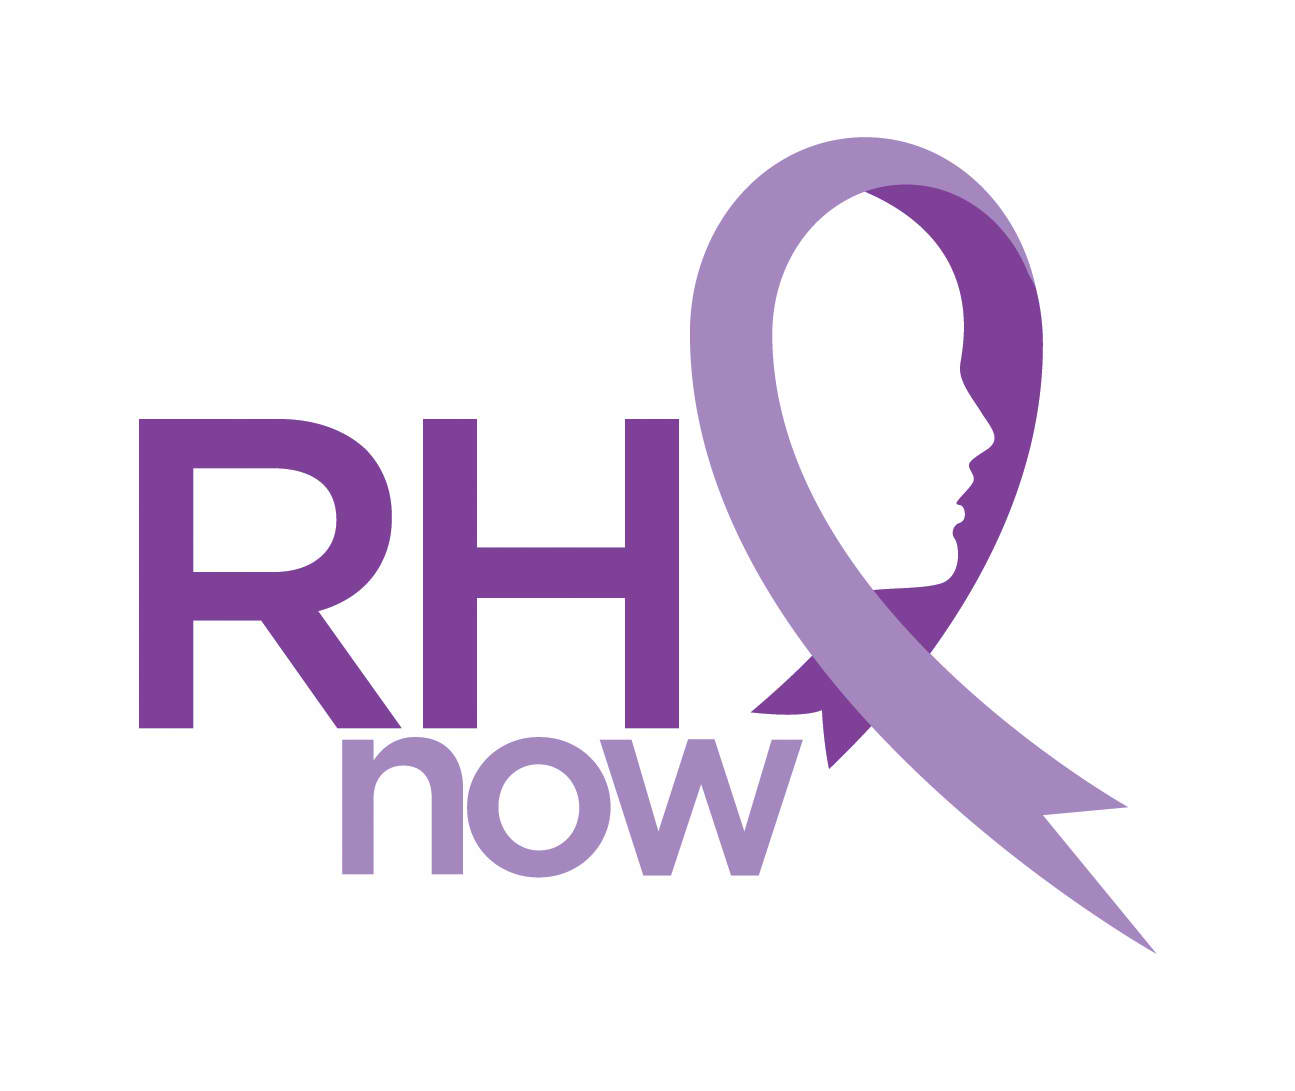 Rh bill law summary